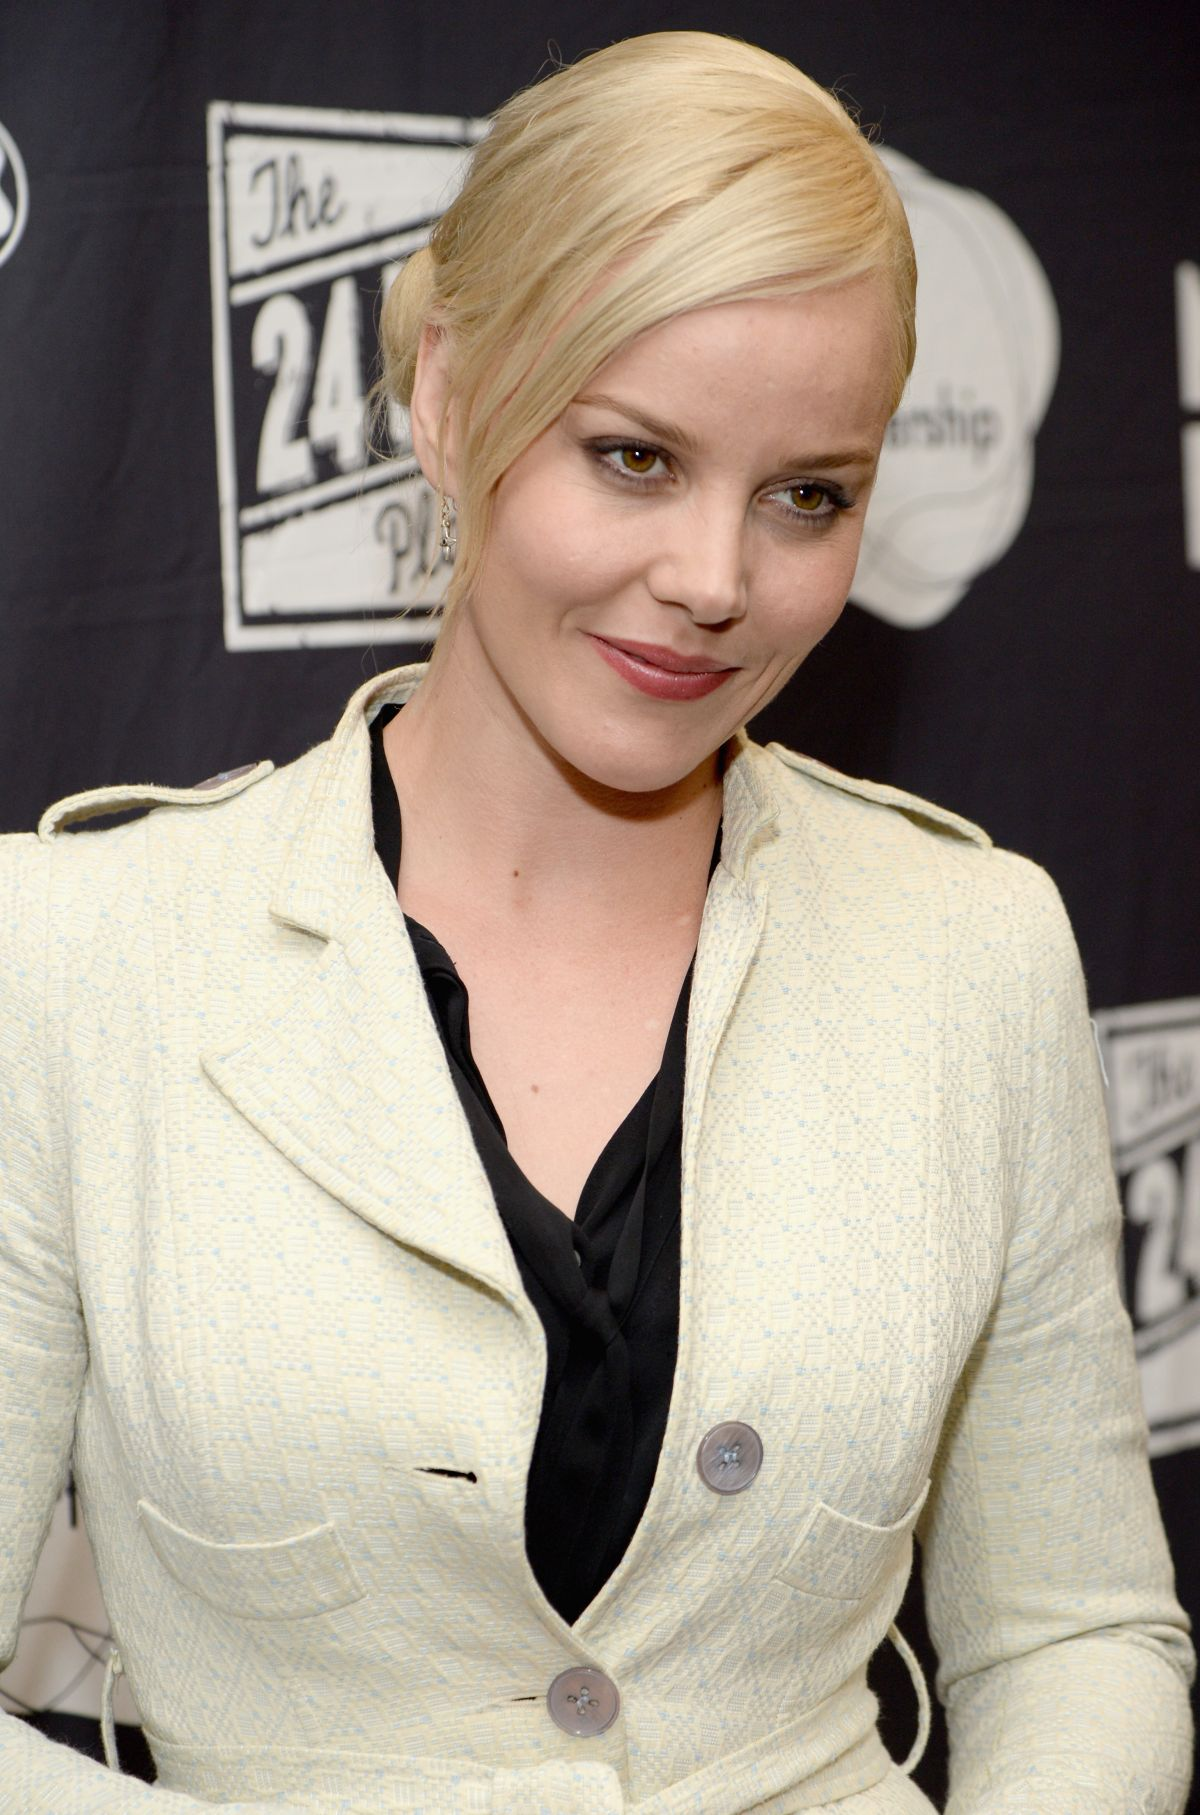 ABBIE CORNISH at Montblanc and Urban Arts 24 Hr Plays in Santa Monica Abbie Cornish